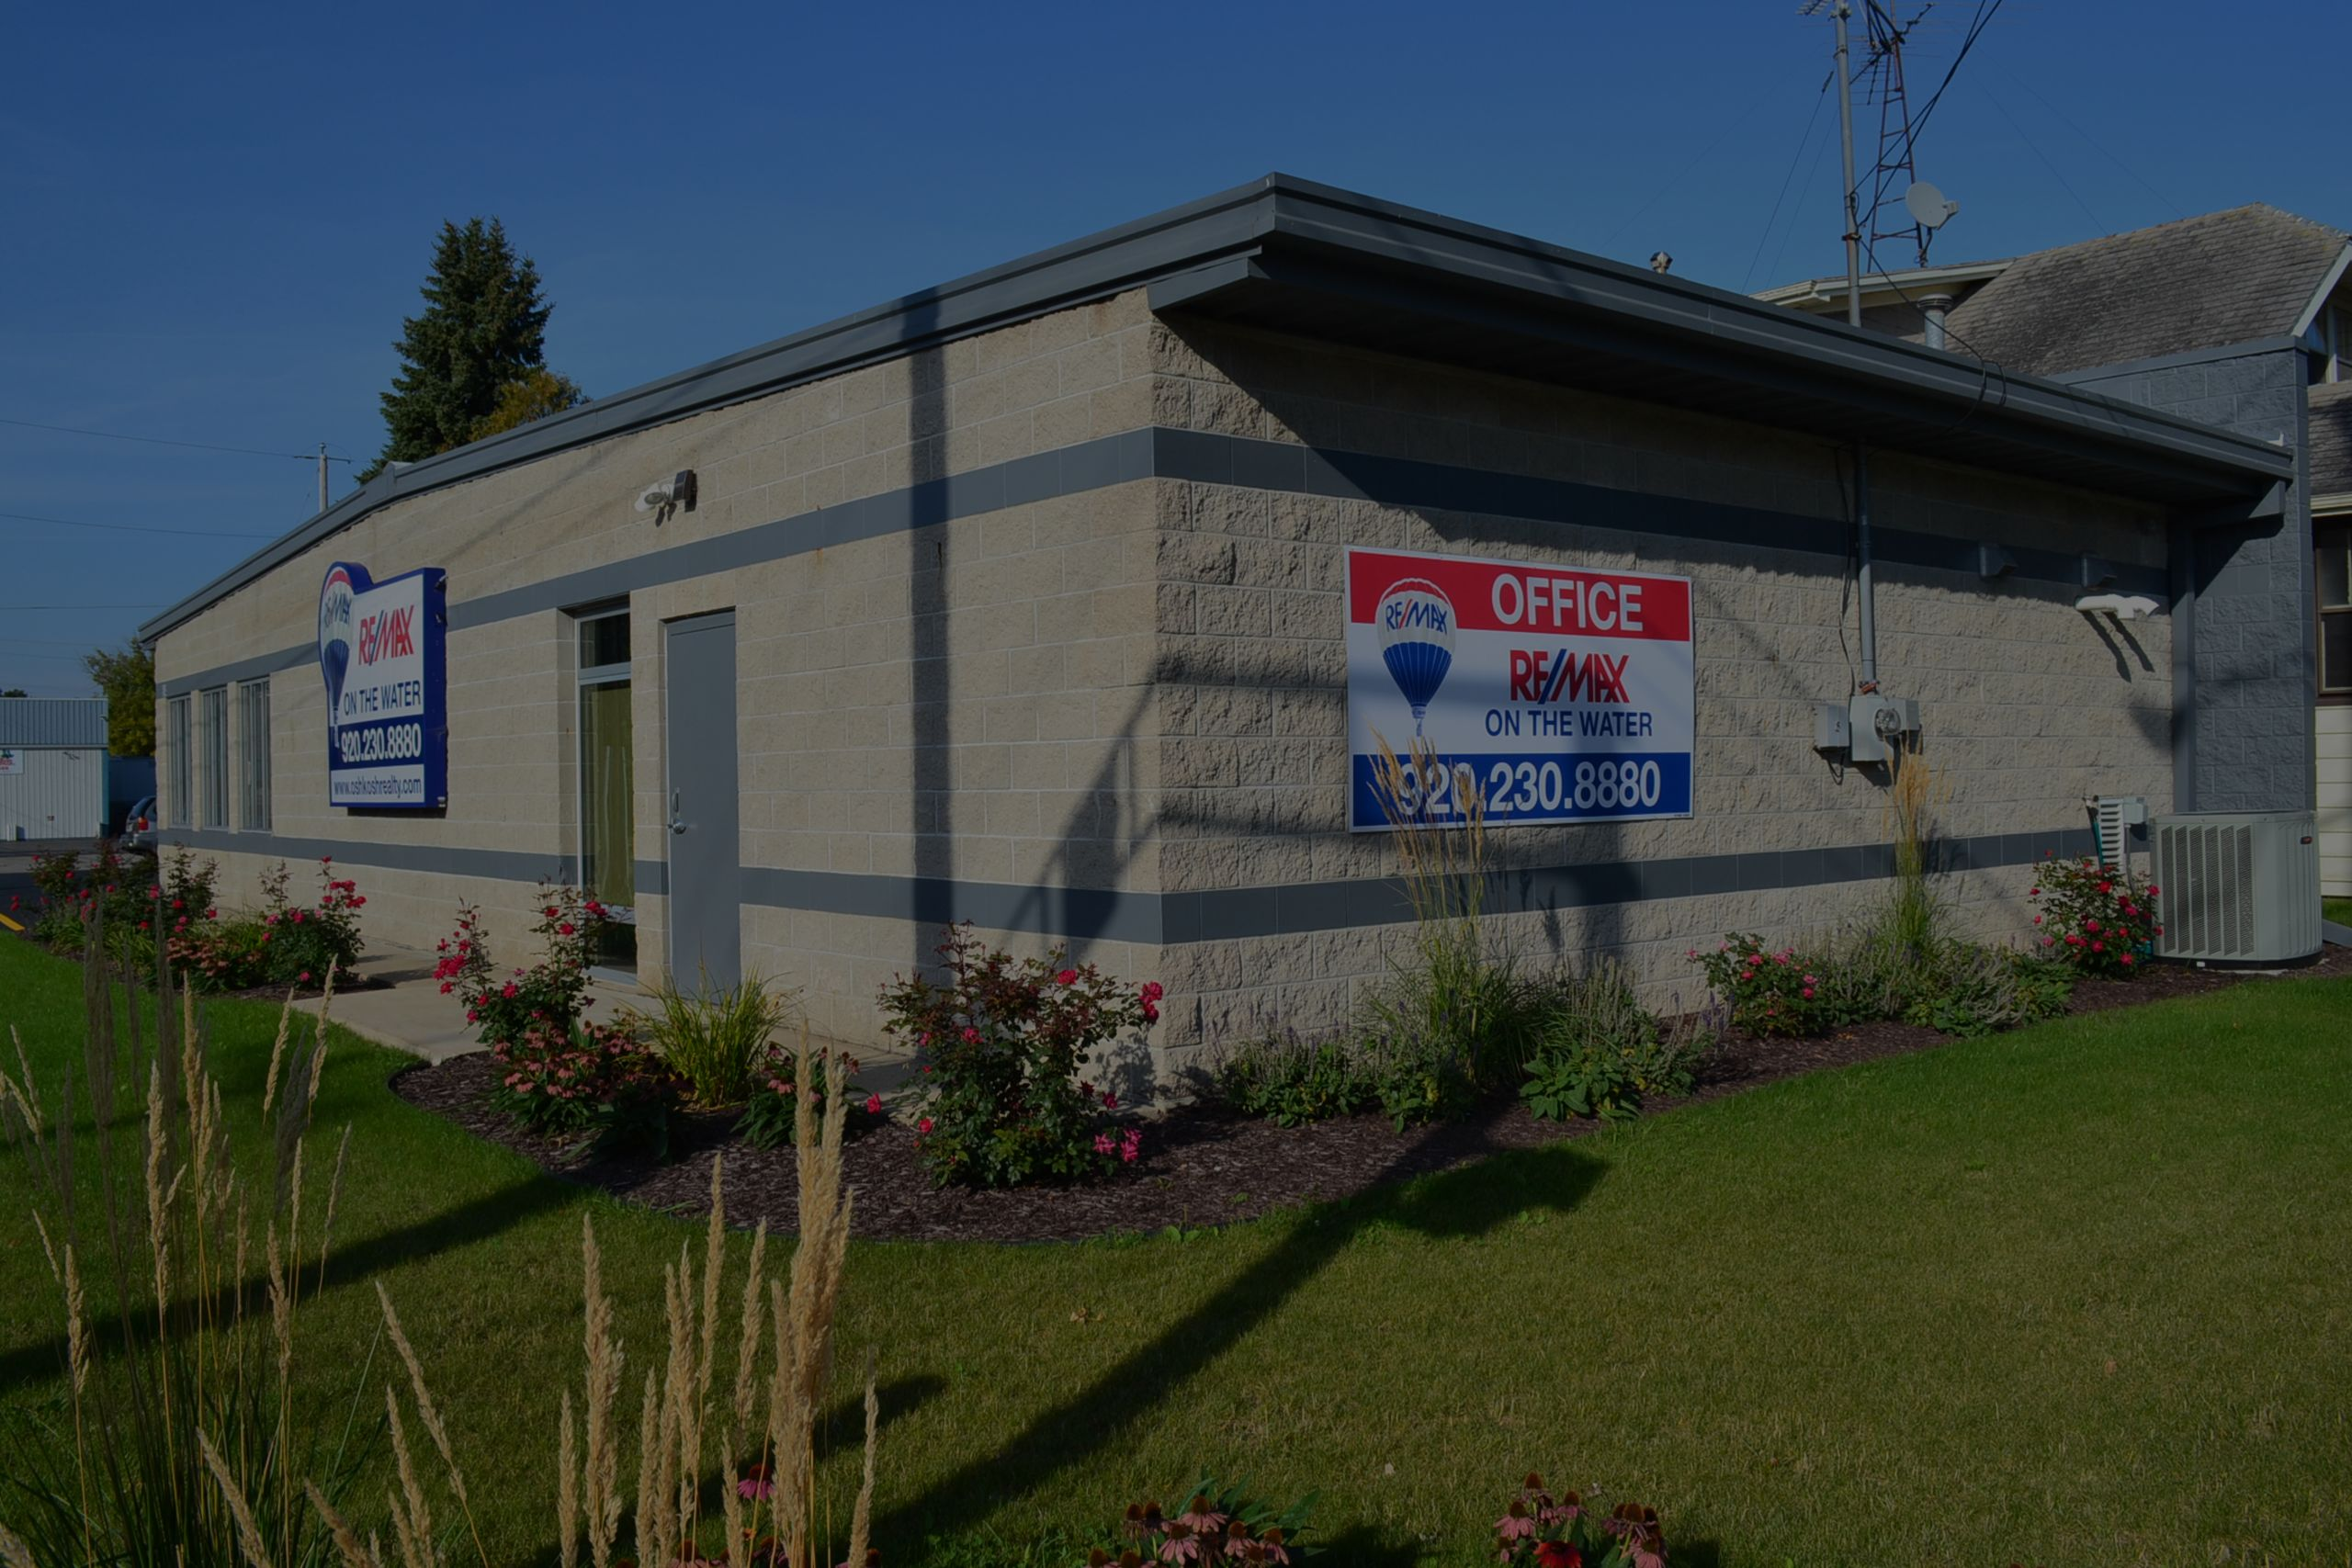 RE/MAX On The Water Office- Corner of 9th & Knapp St, Oshkosh, WI